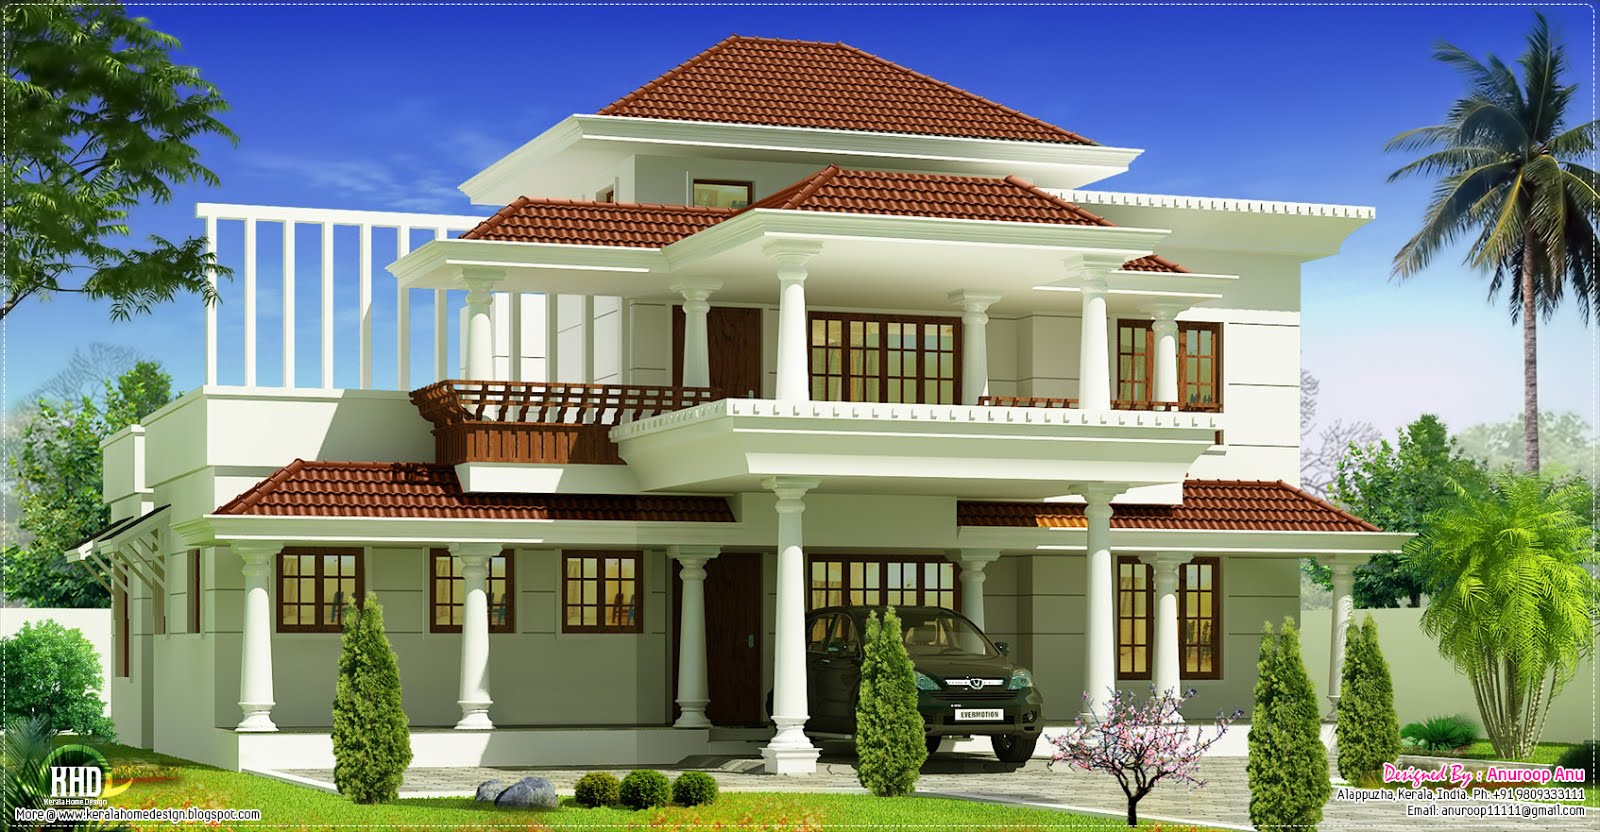 Kerala house models houses plans designs for Kerala houses designs